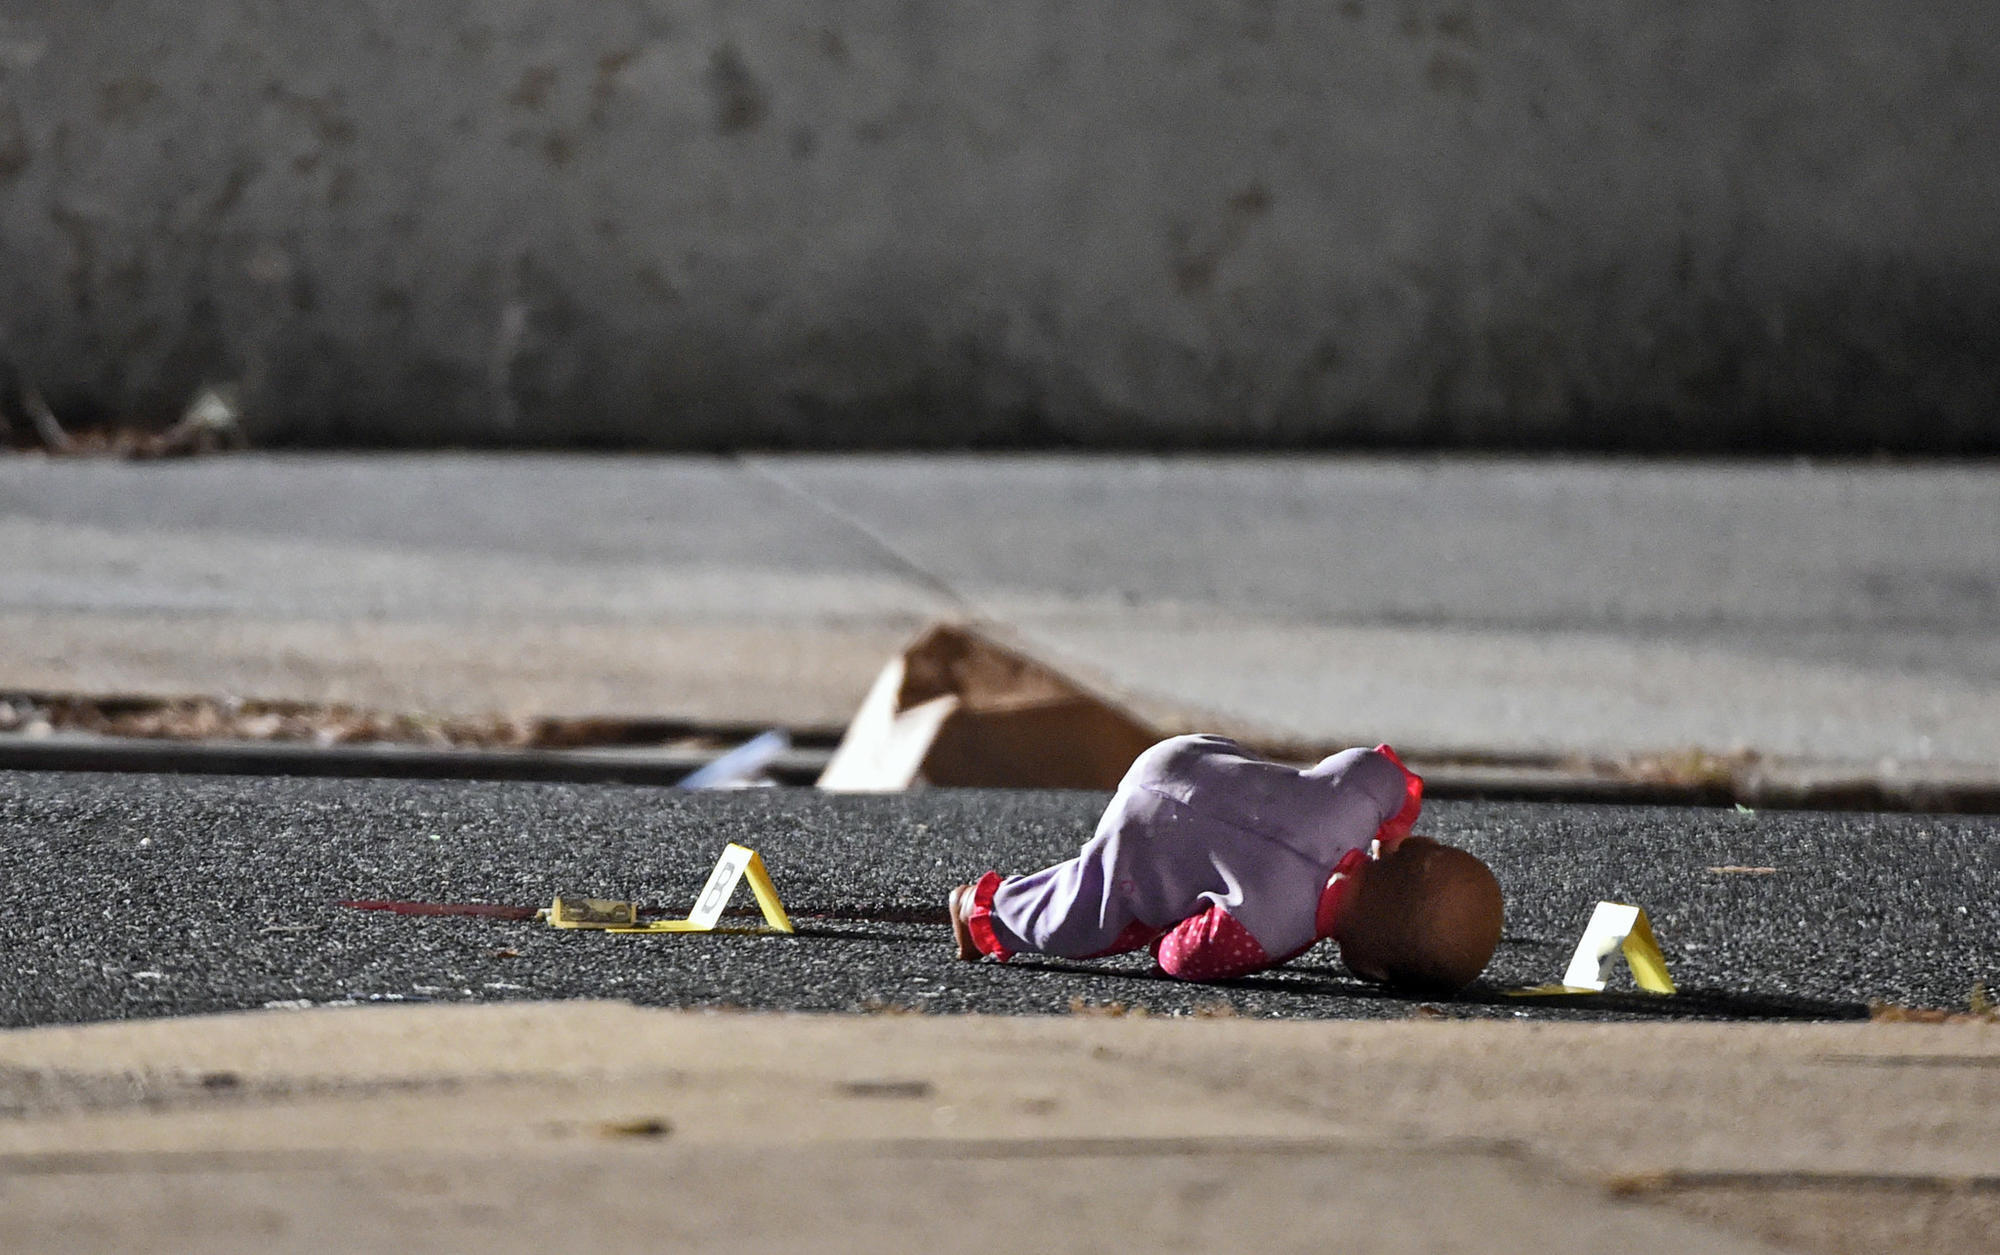 Sweet Little Thing Shooting Of 5 Year Old In West Baltimore